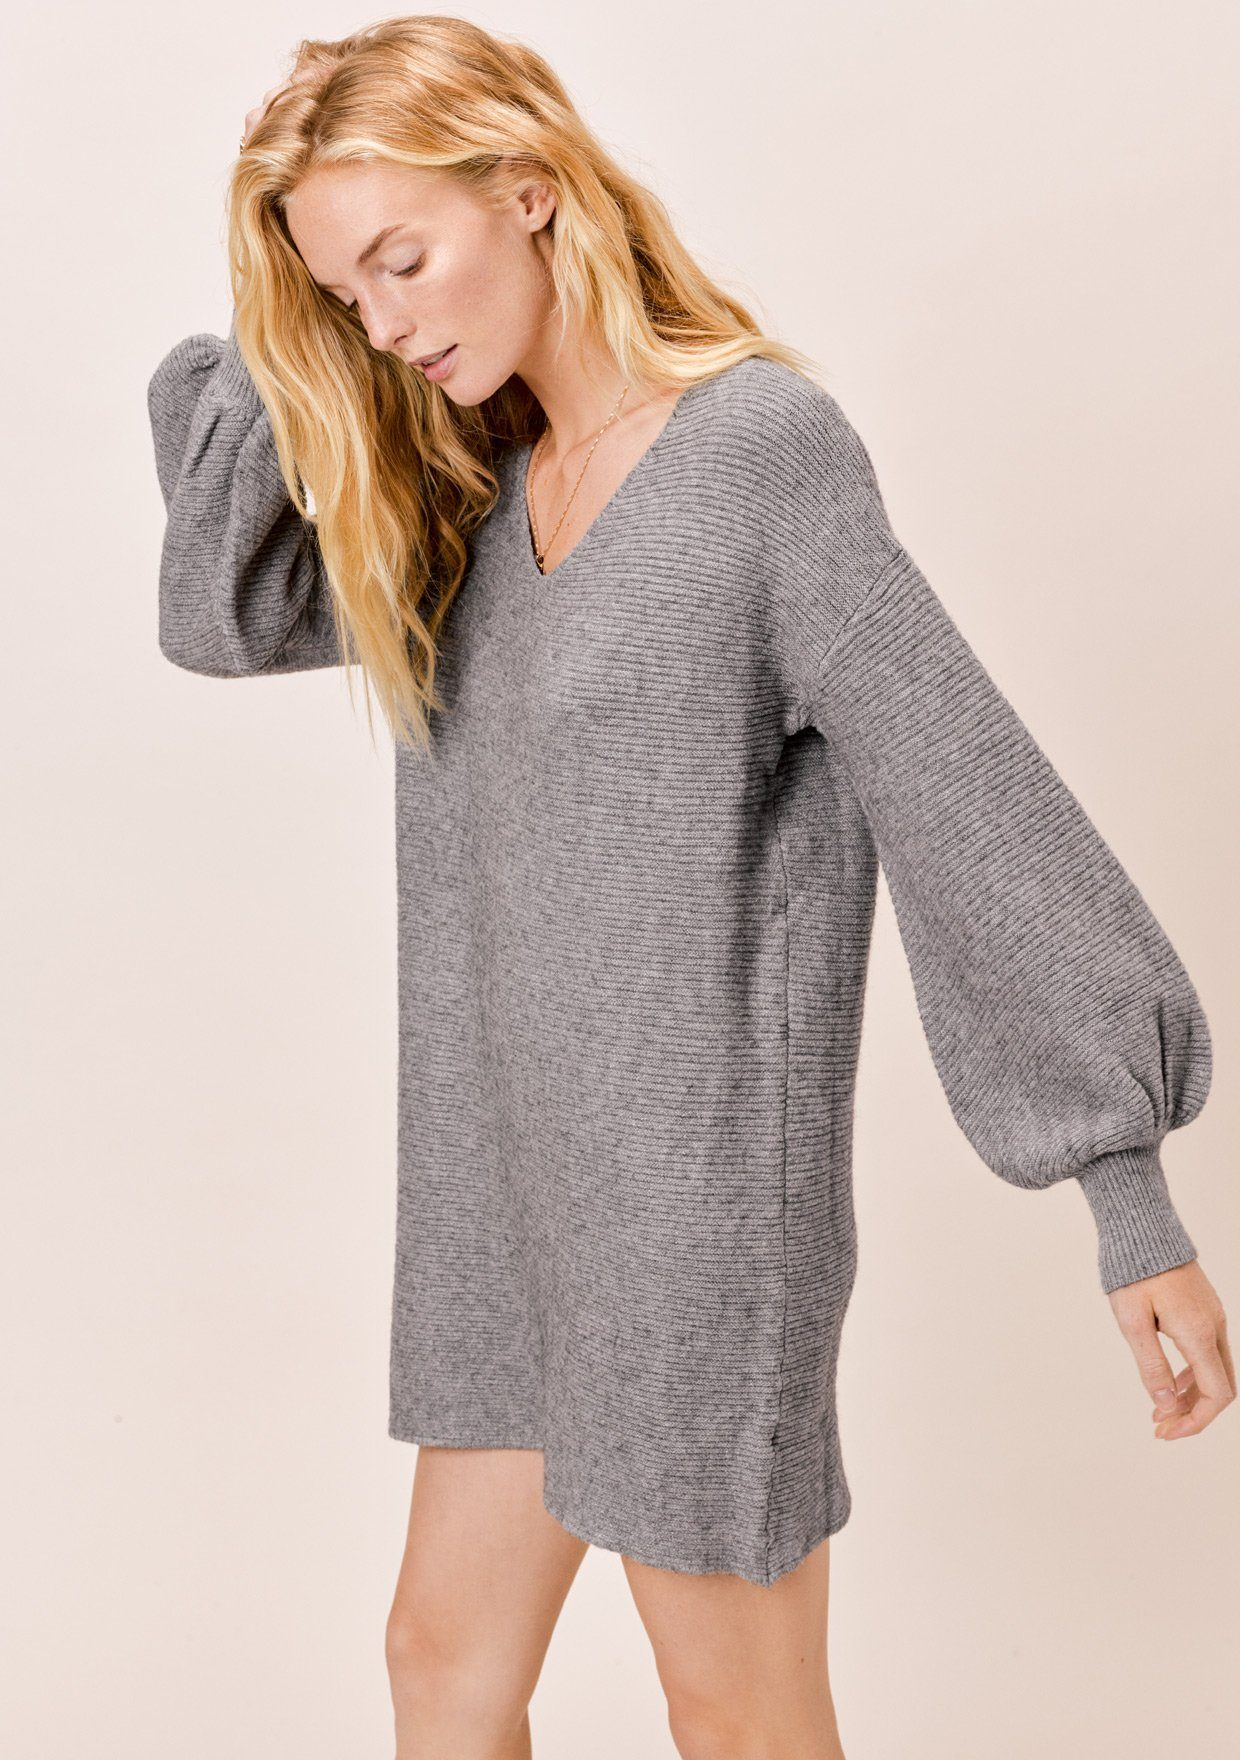 [Color: Heather Charcoal] Lovestitch heather charcoal, ribbed sweater dress with volume lantern sleeves.